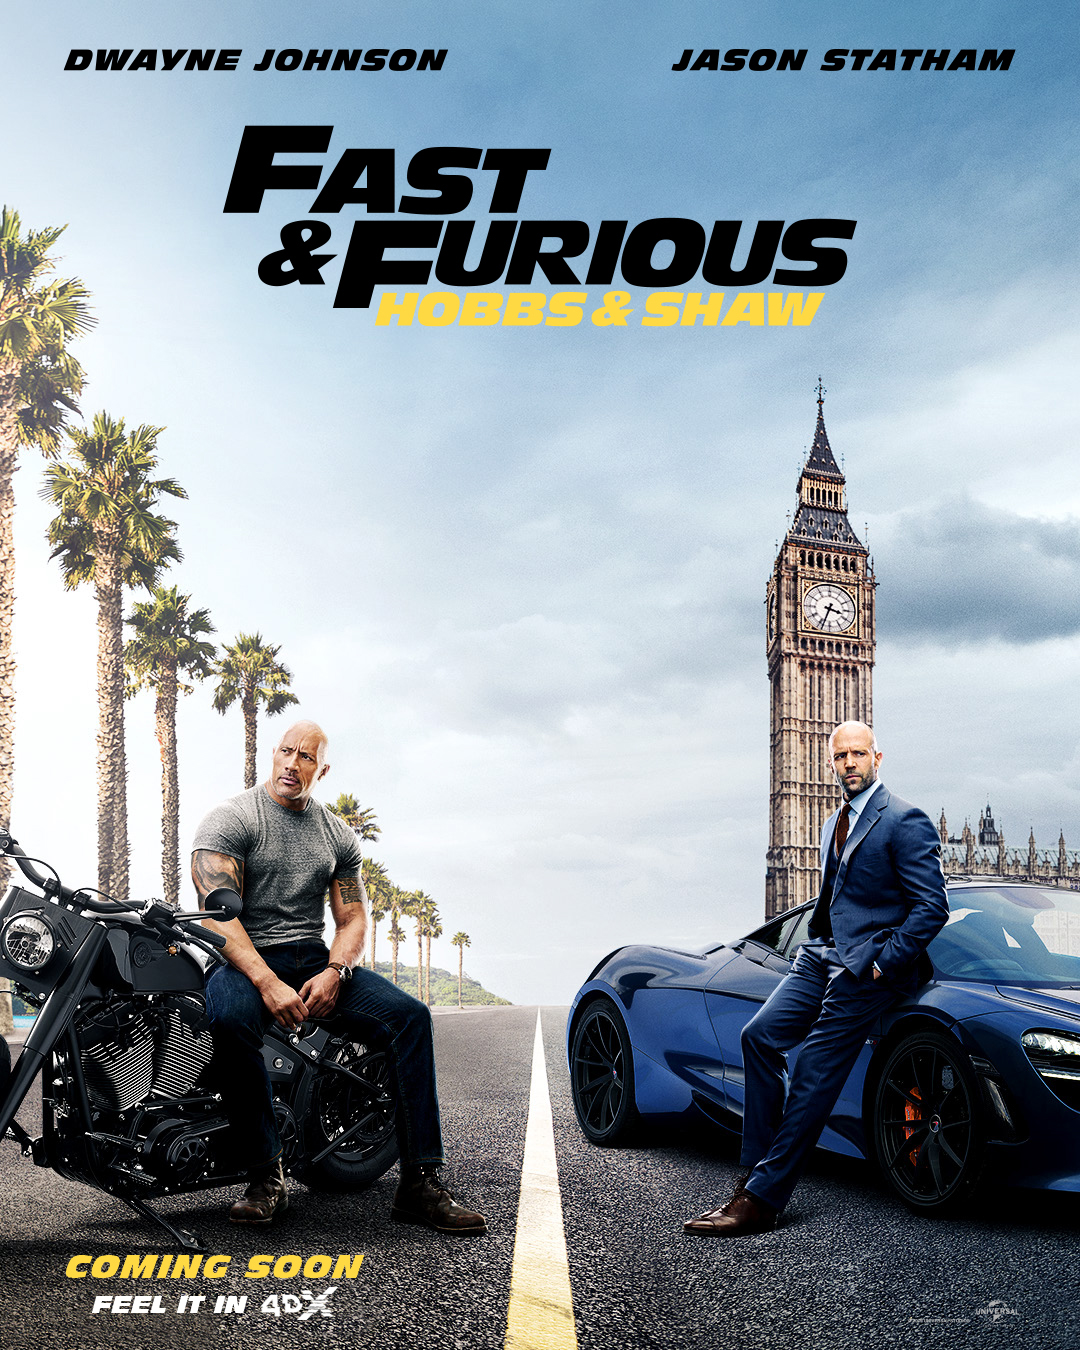 Fast & Furious Presents: Hobbs & Shaw will be the culmination of 4DX with Mach-speed car chases and heart-pounding street racing